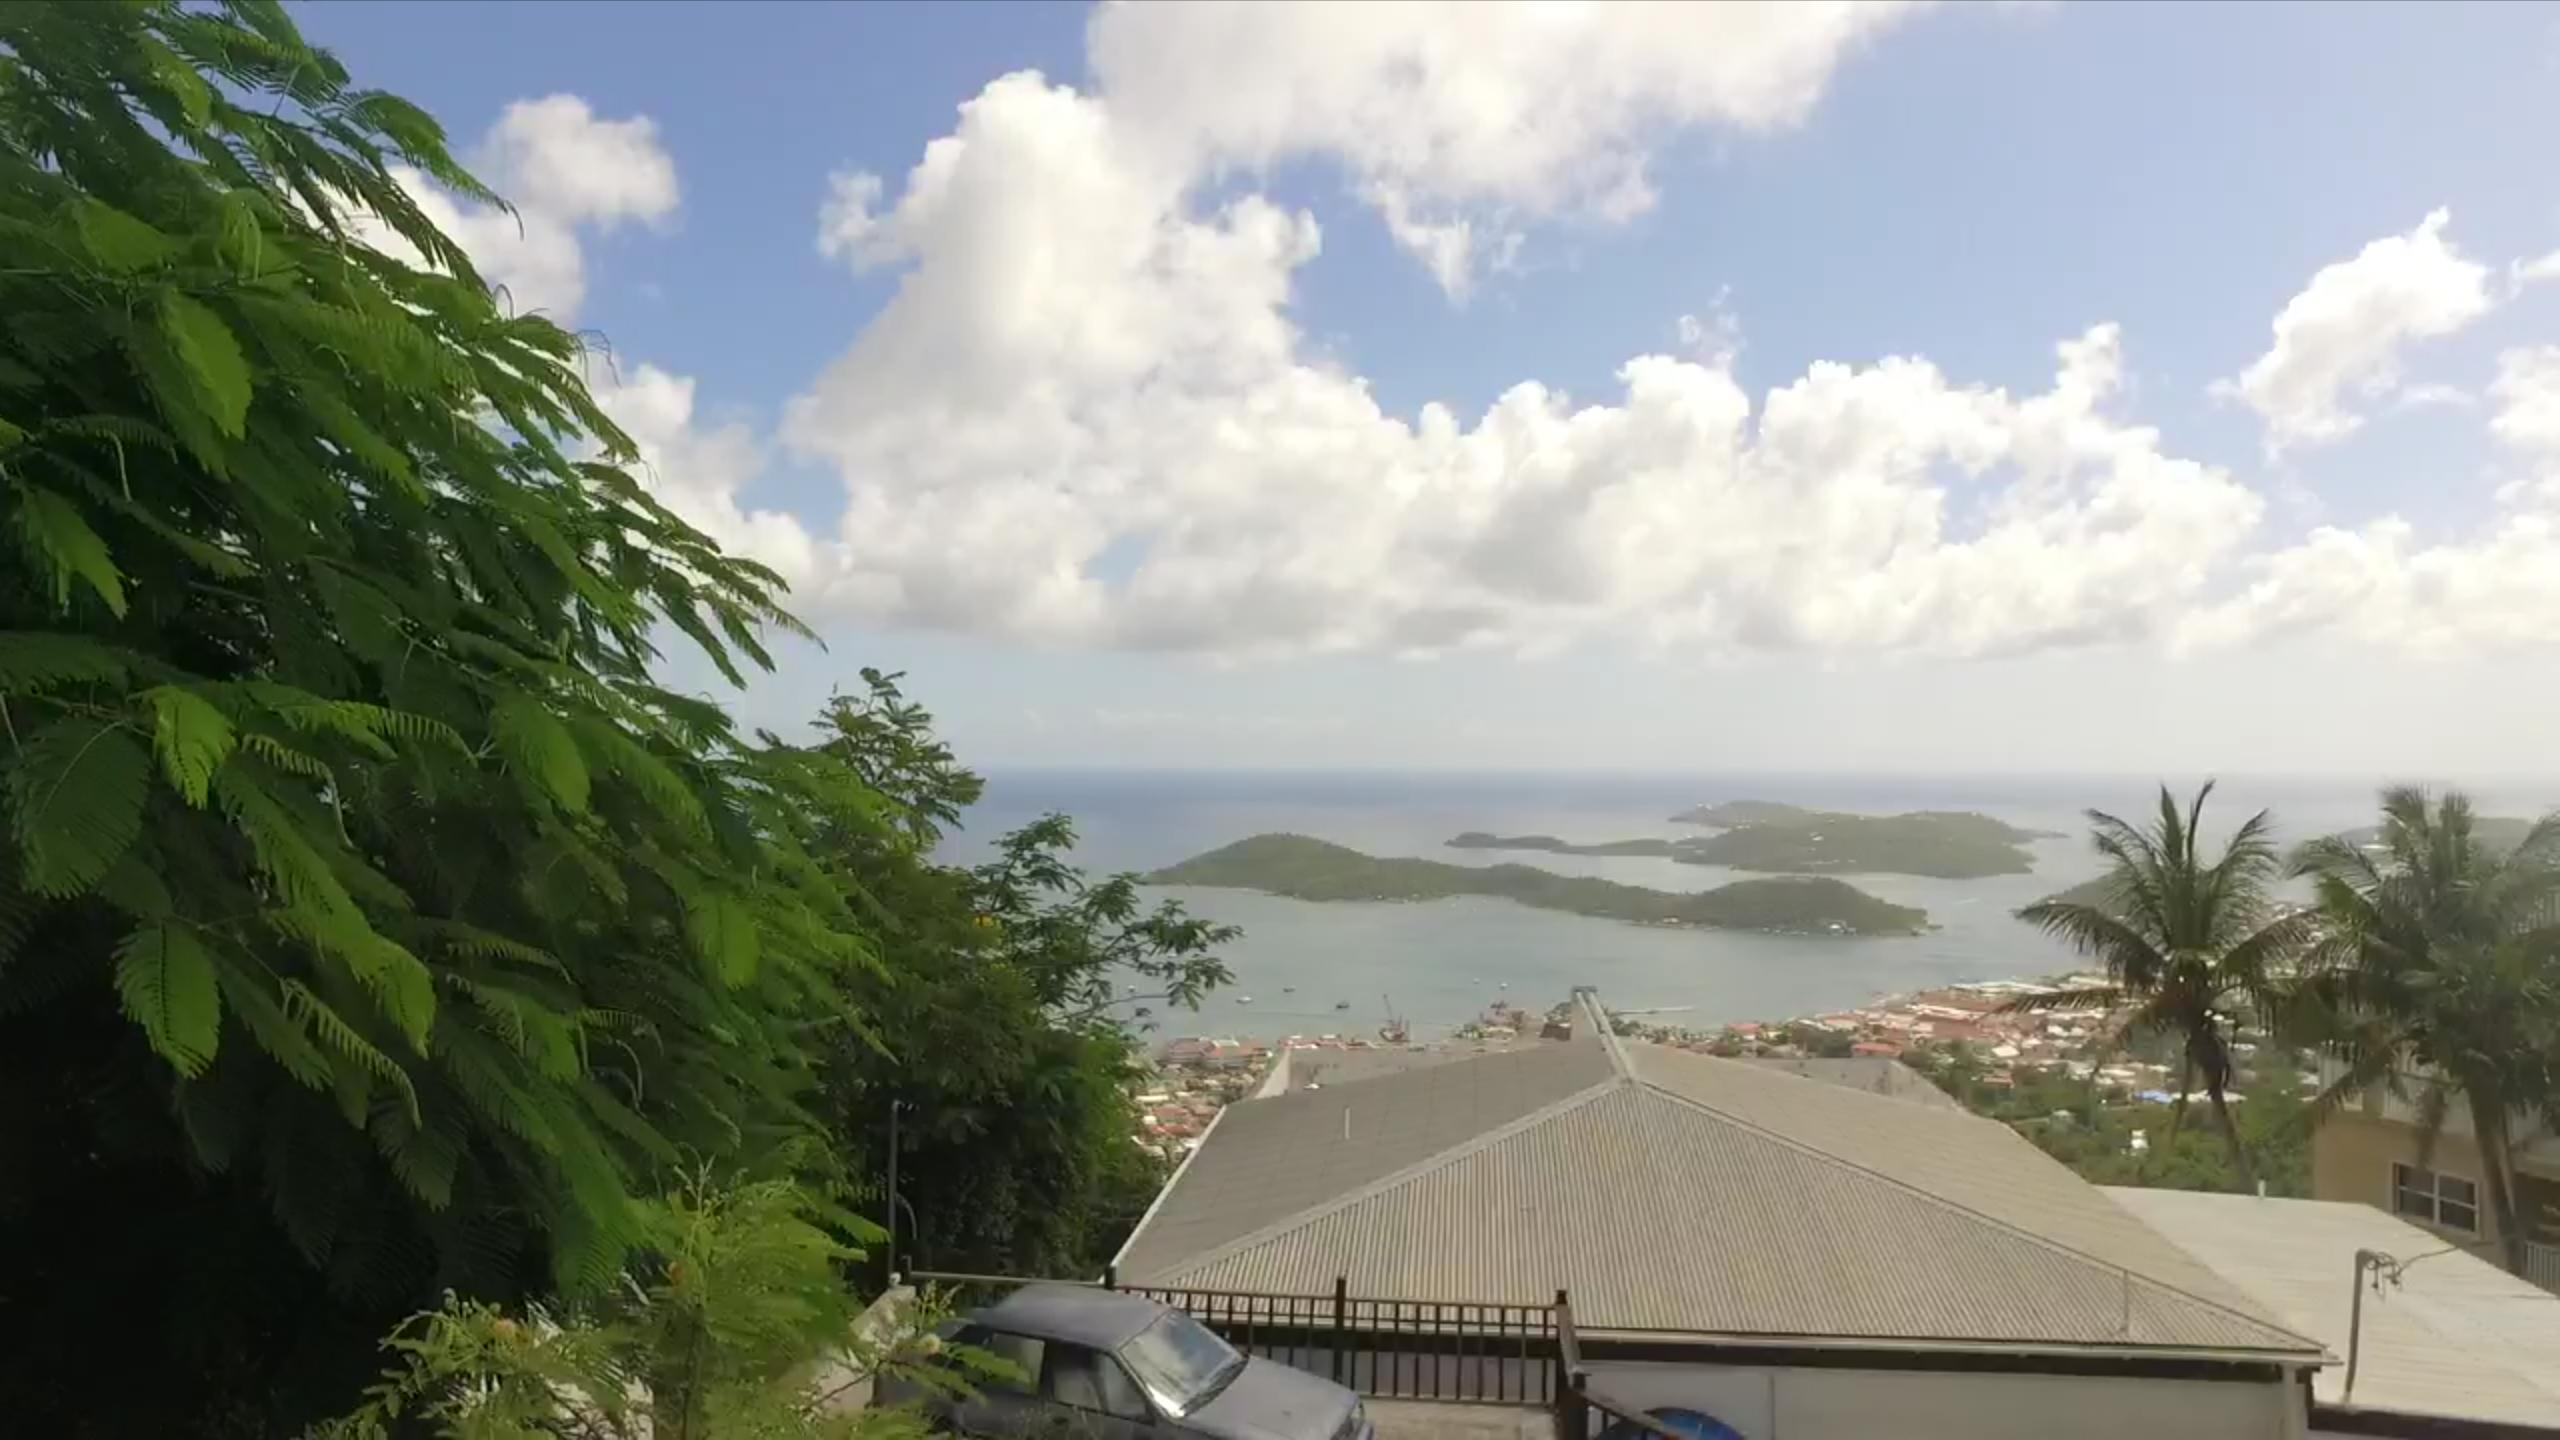 Multi-Family Home for Sale at 405A Hospital Ground NEW 405A Hospital Ground NEW St Thomas, Virgin Islands 00802 United States Virgin Islands